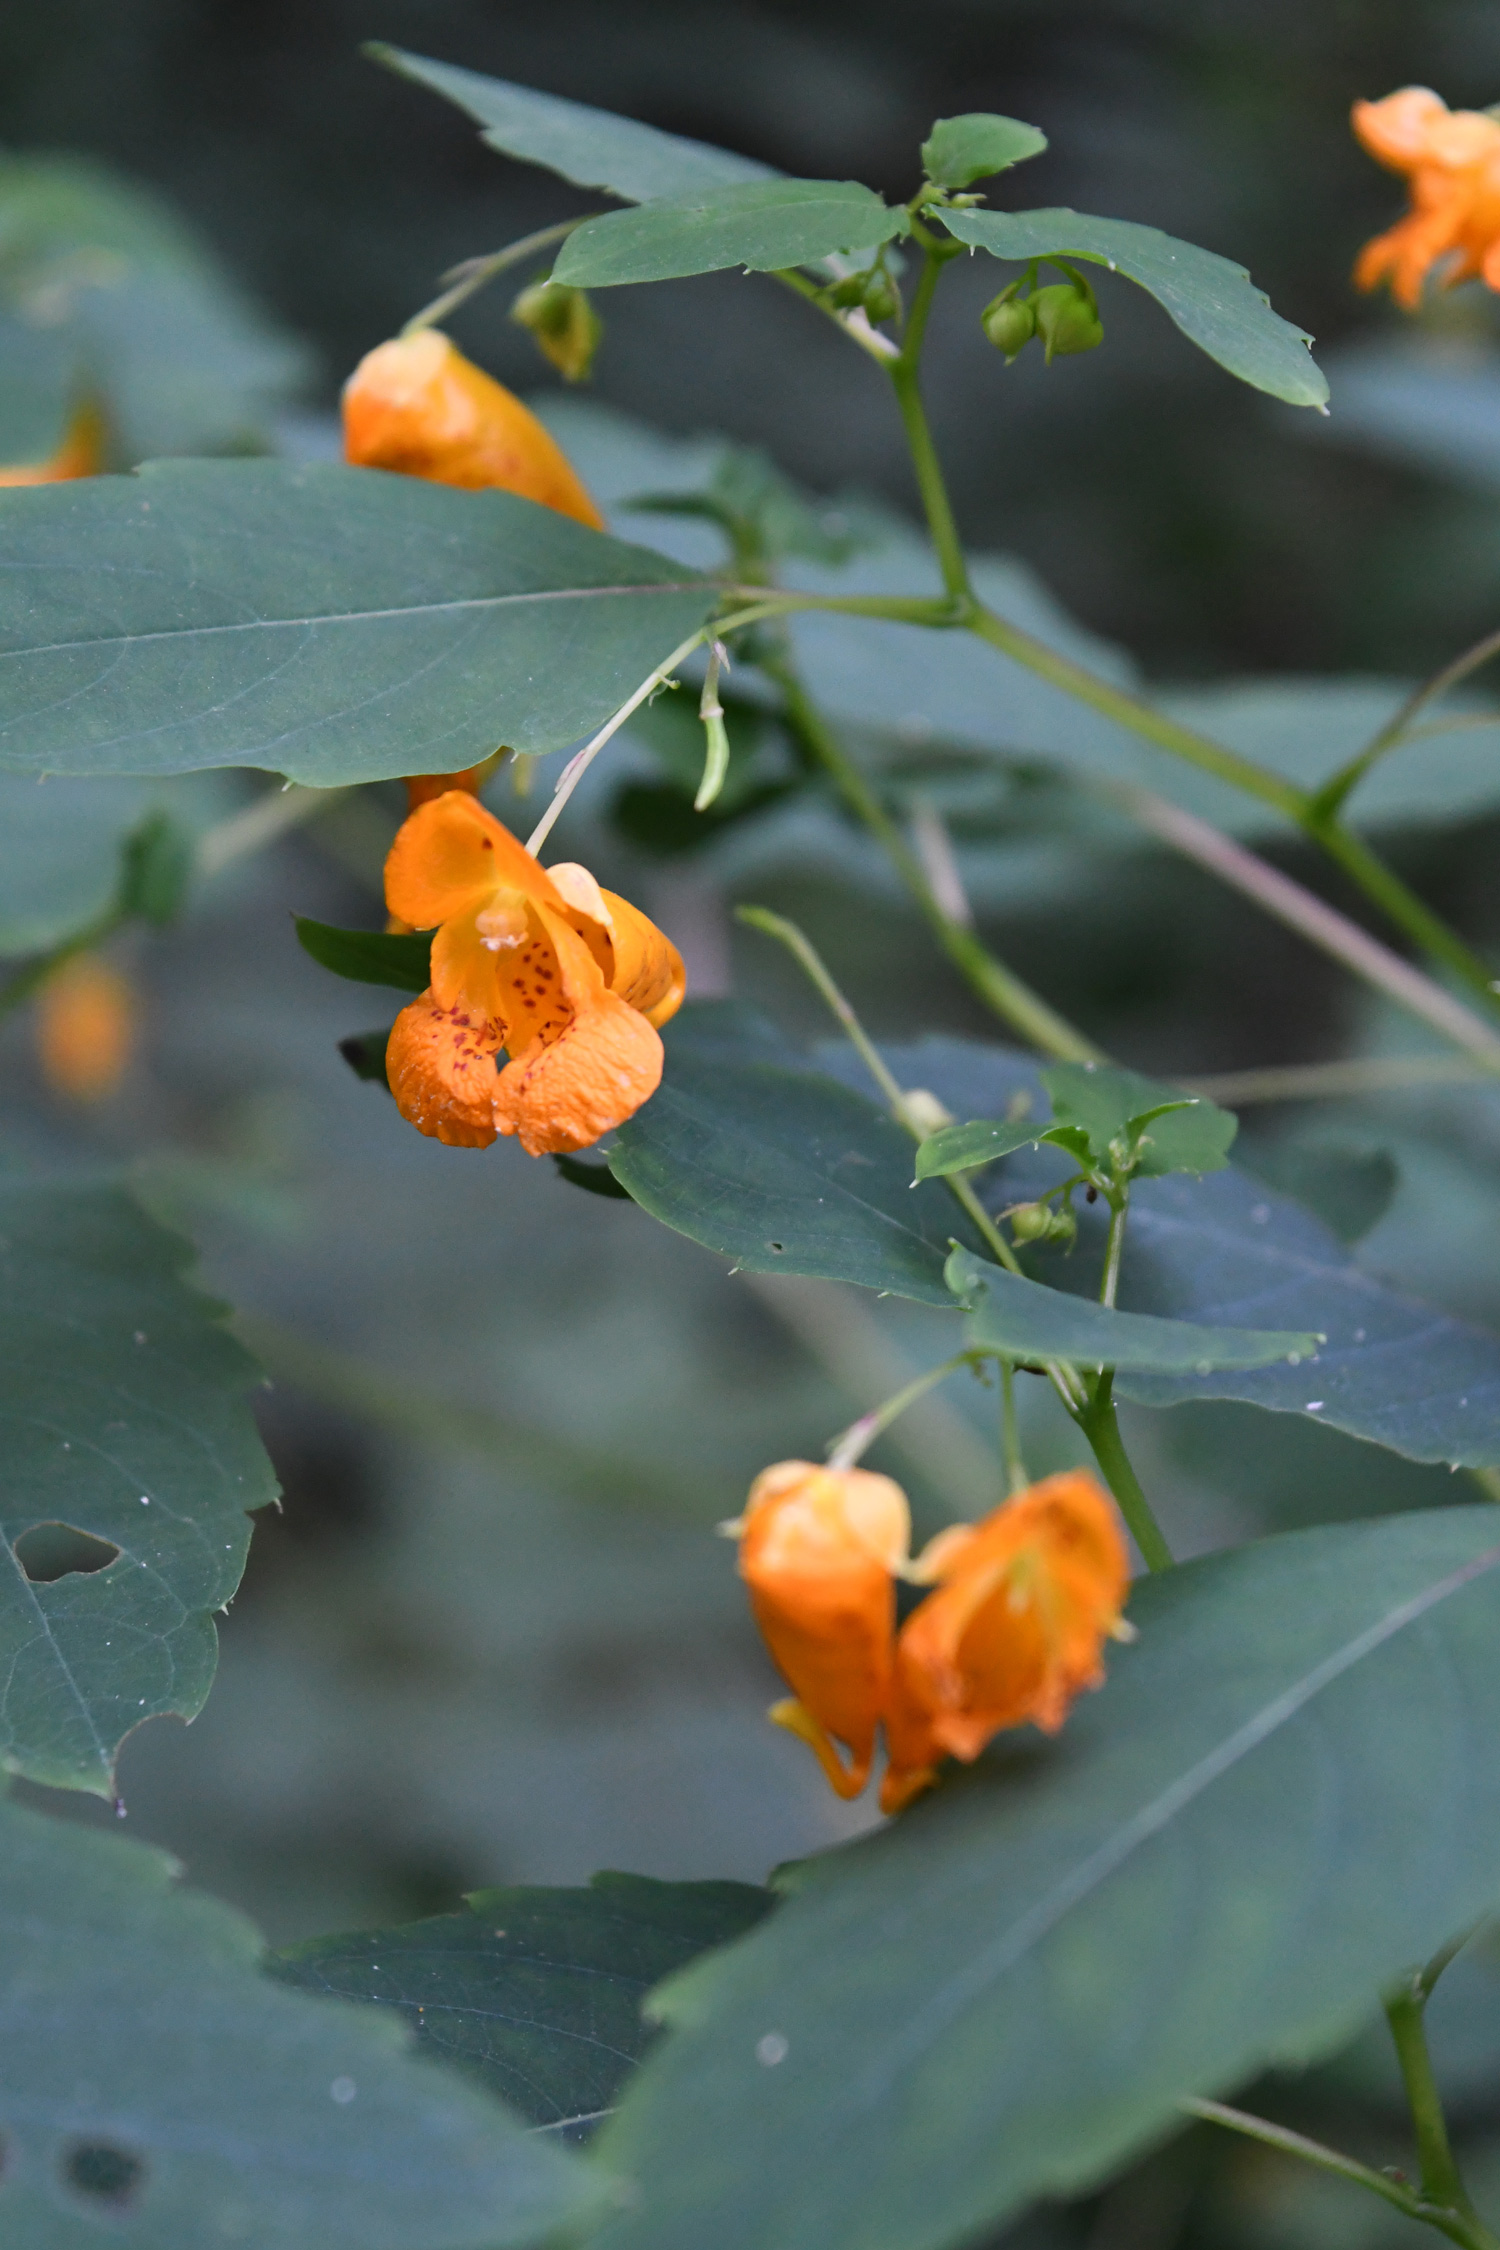 Orange jewelweed / spotted touch-me-not, Prospect Park